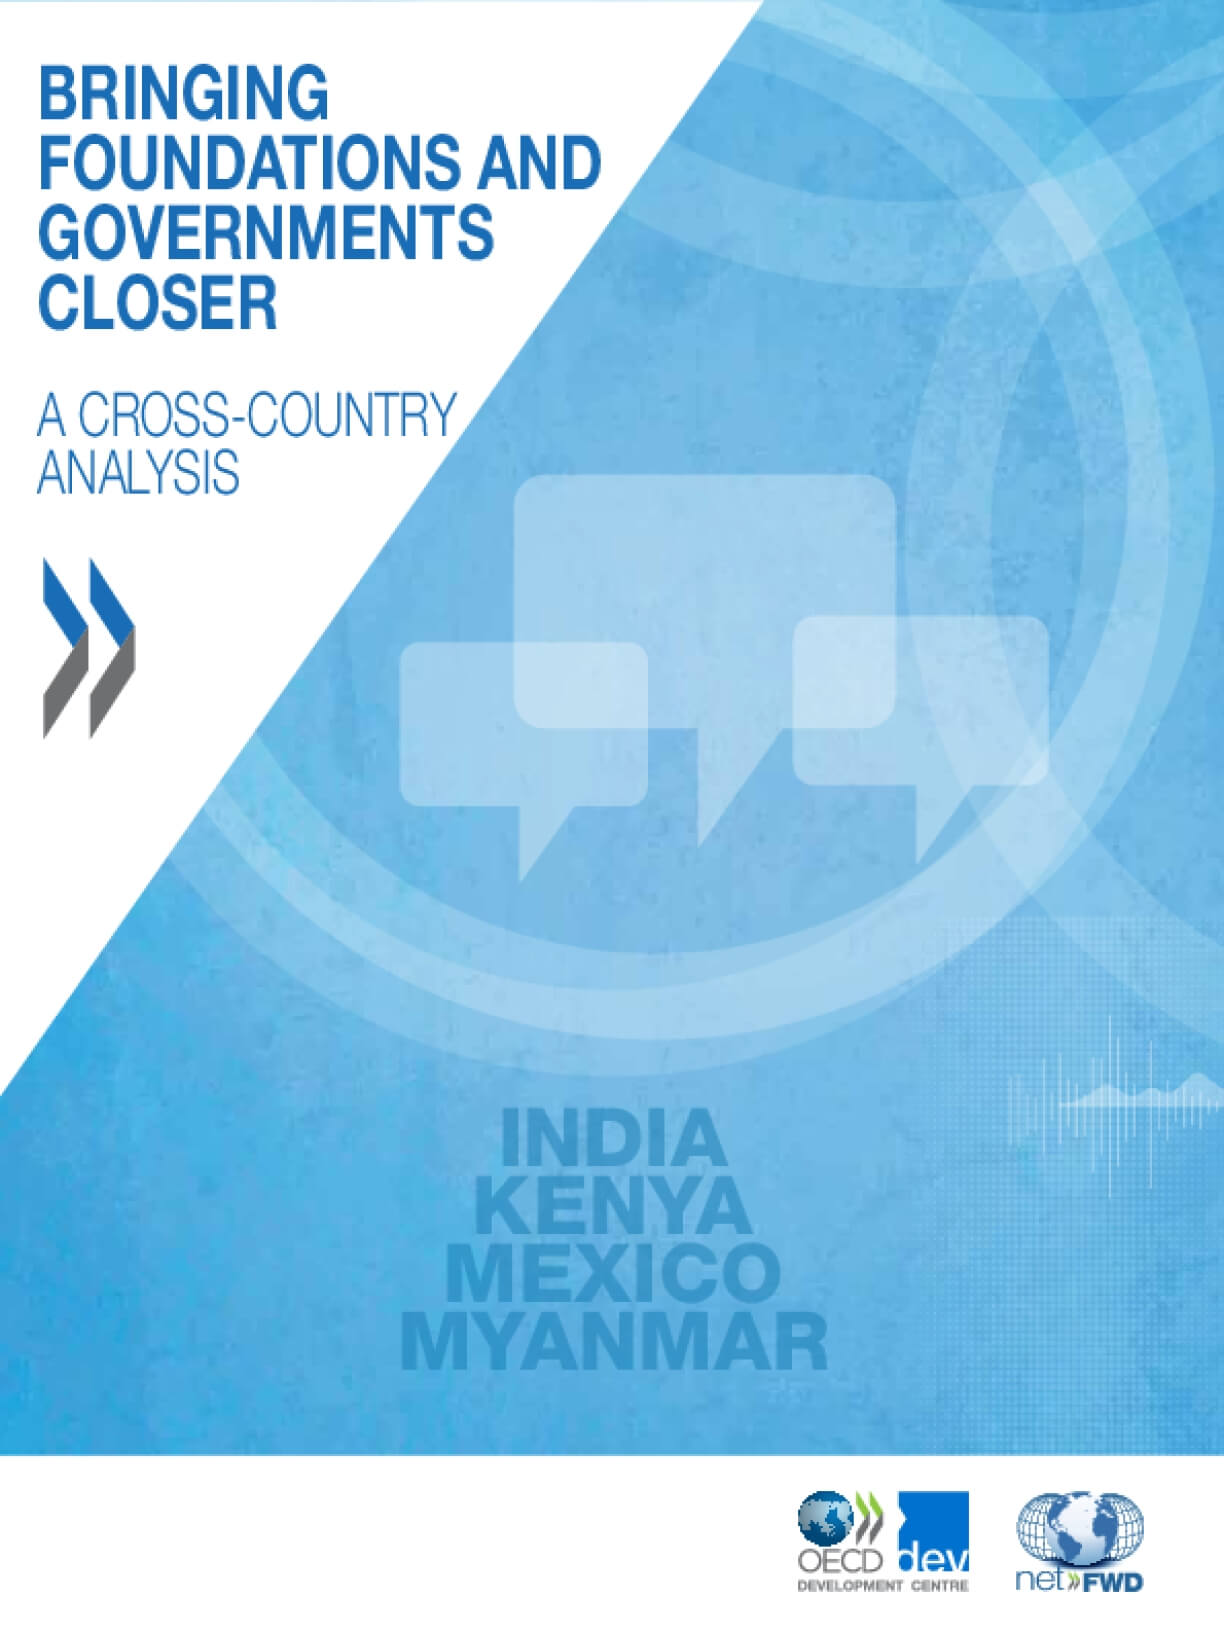 Bringing Foundations and Governments Closer. A Cross-Country Analysis